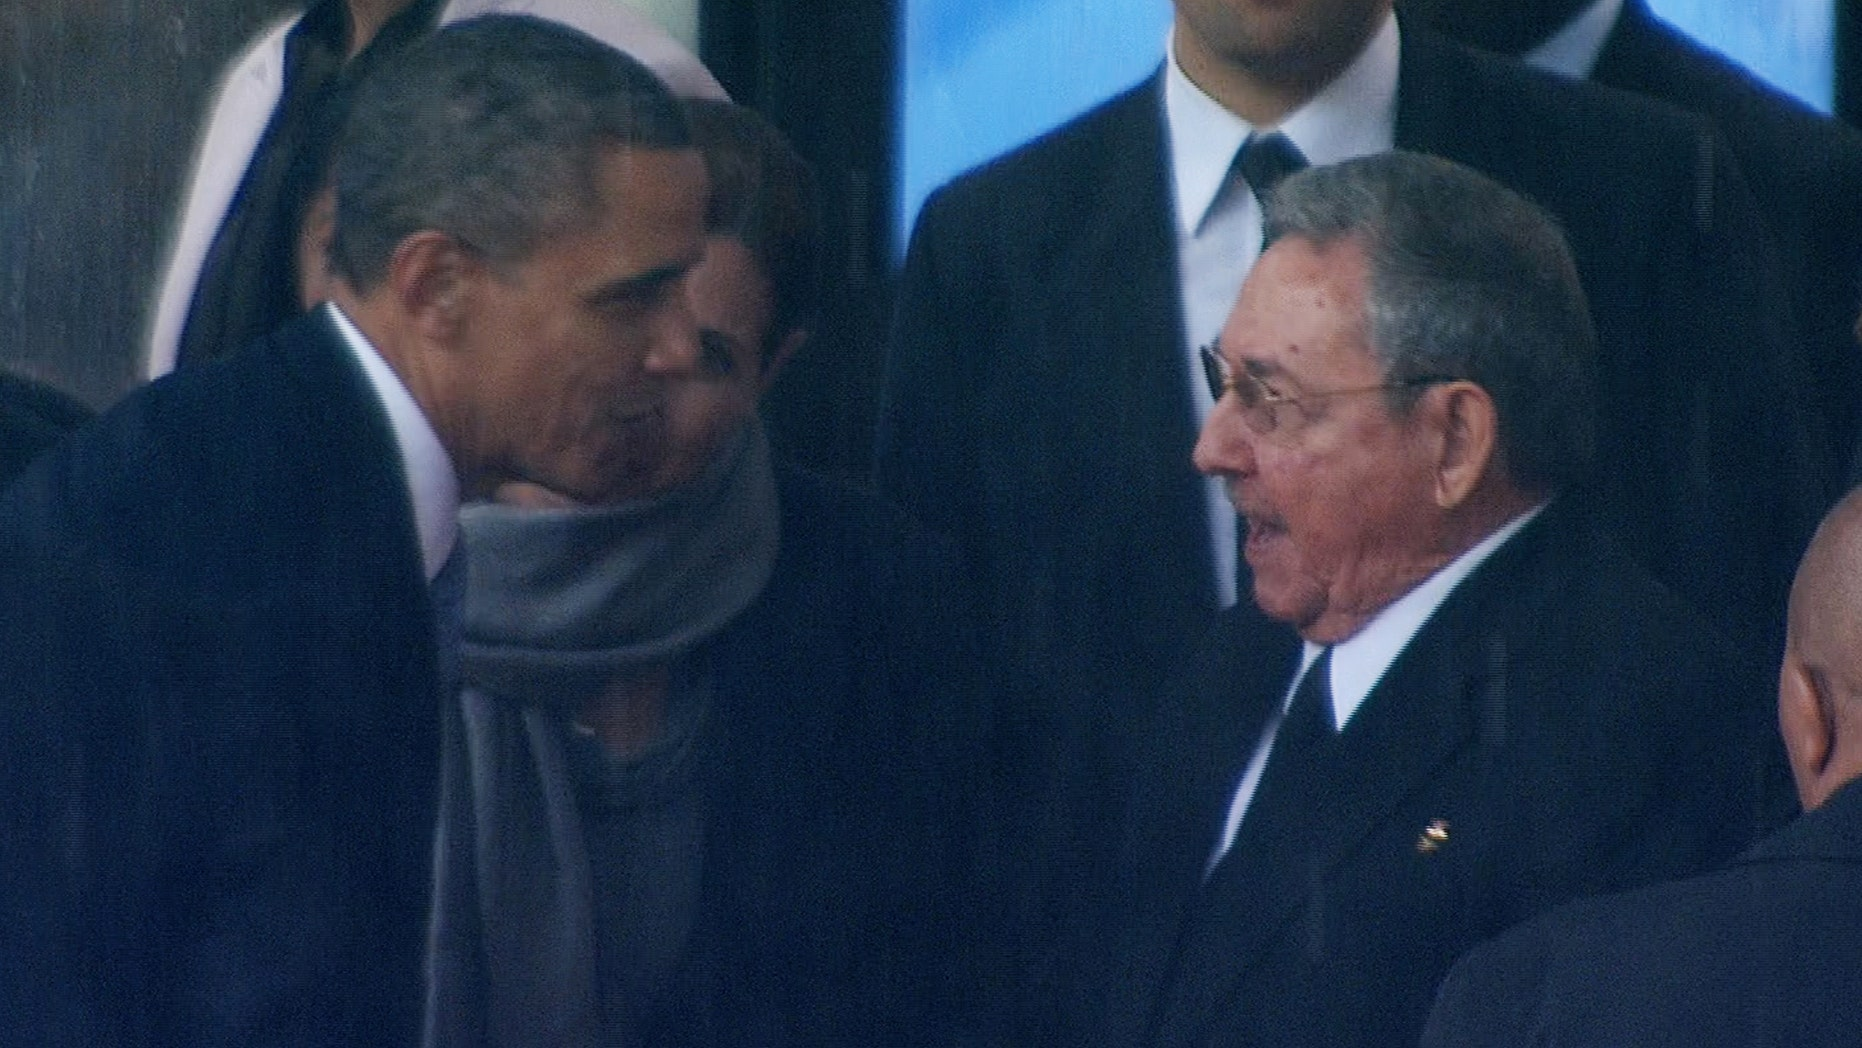 President Obama shakes hands with Cuban President Raul Castro at the FNB Stadium in Soweto, South Africa, during a memorial service for former South African President Nelson Mandela, Tuesday Dec. 10, 2013.